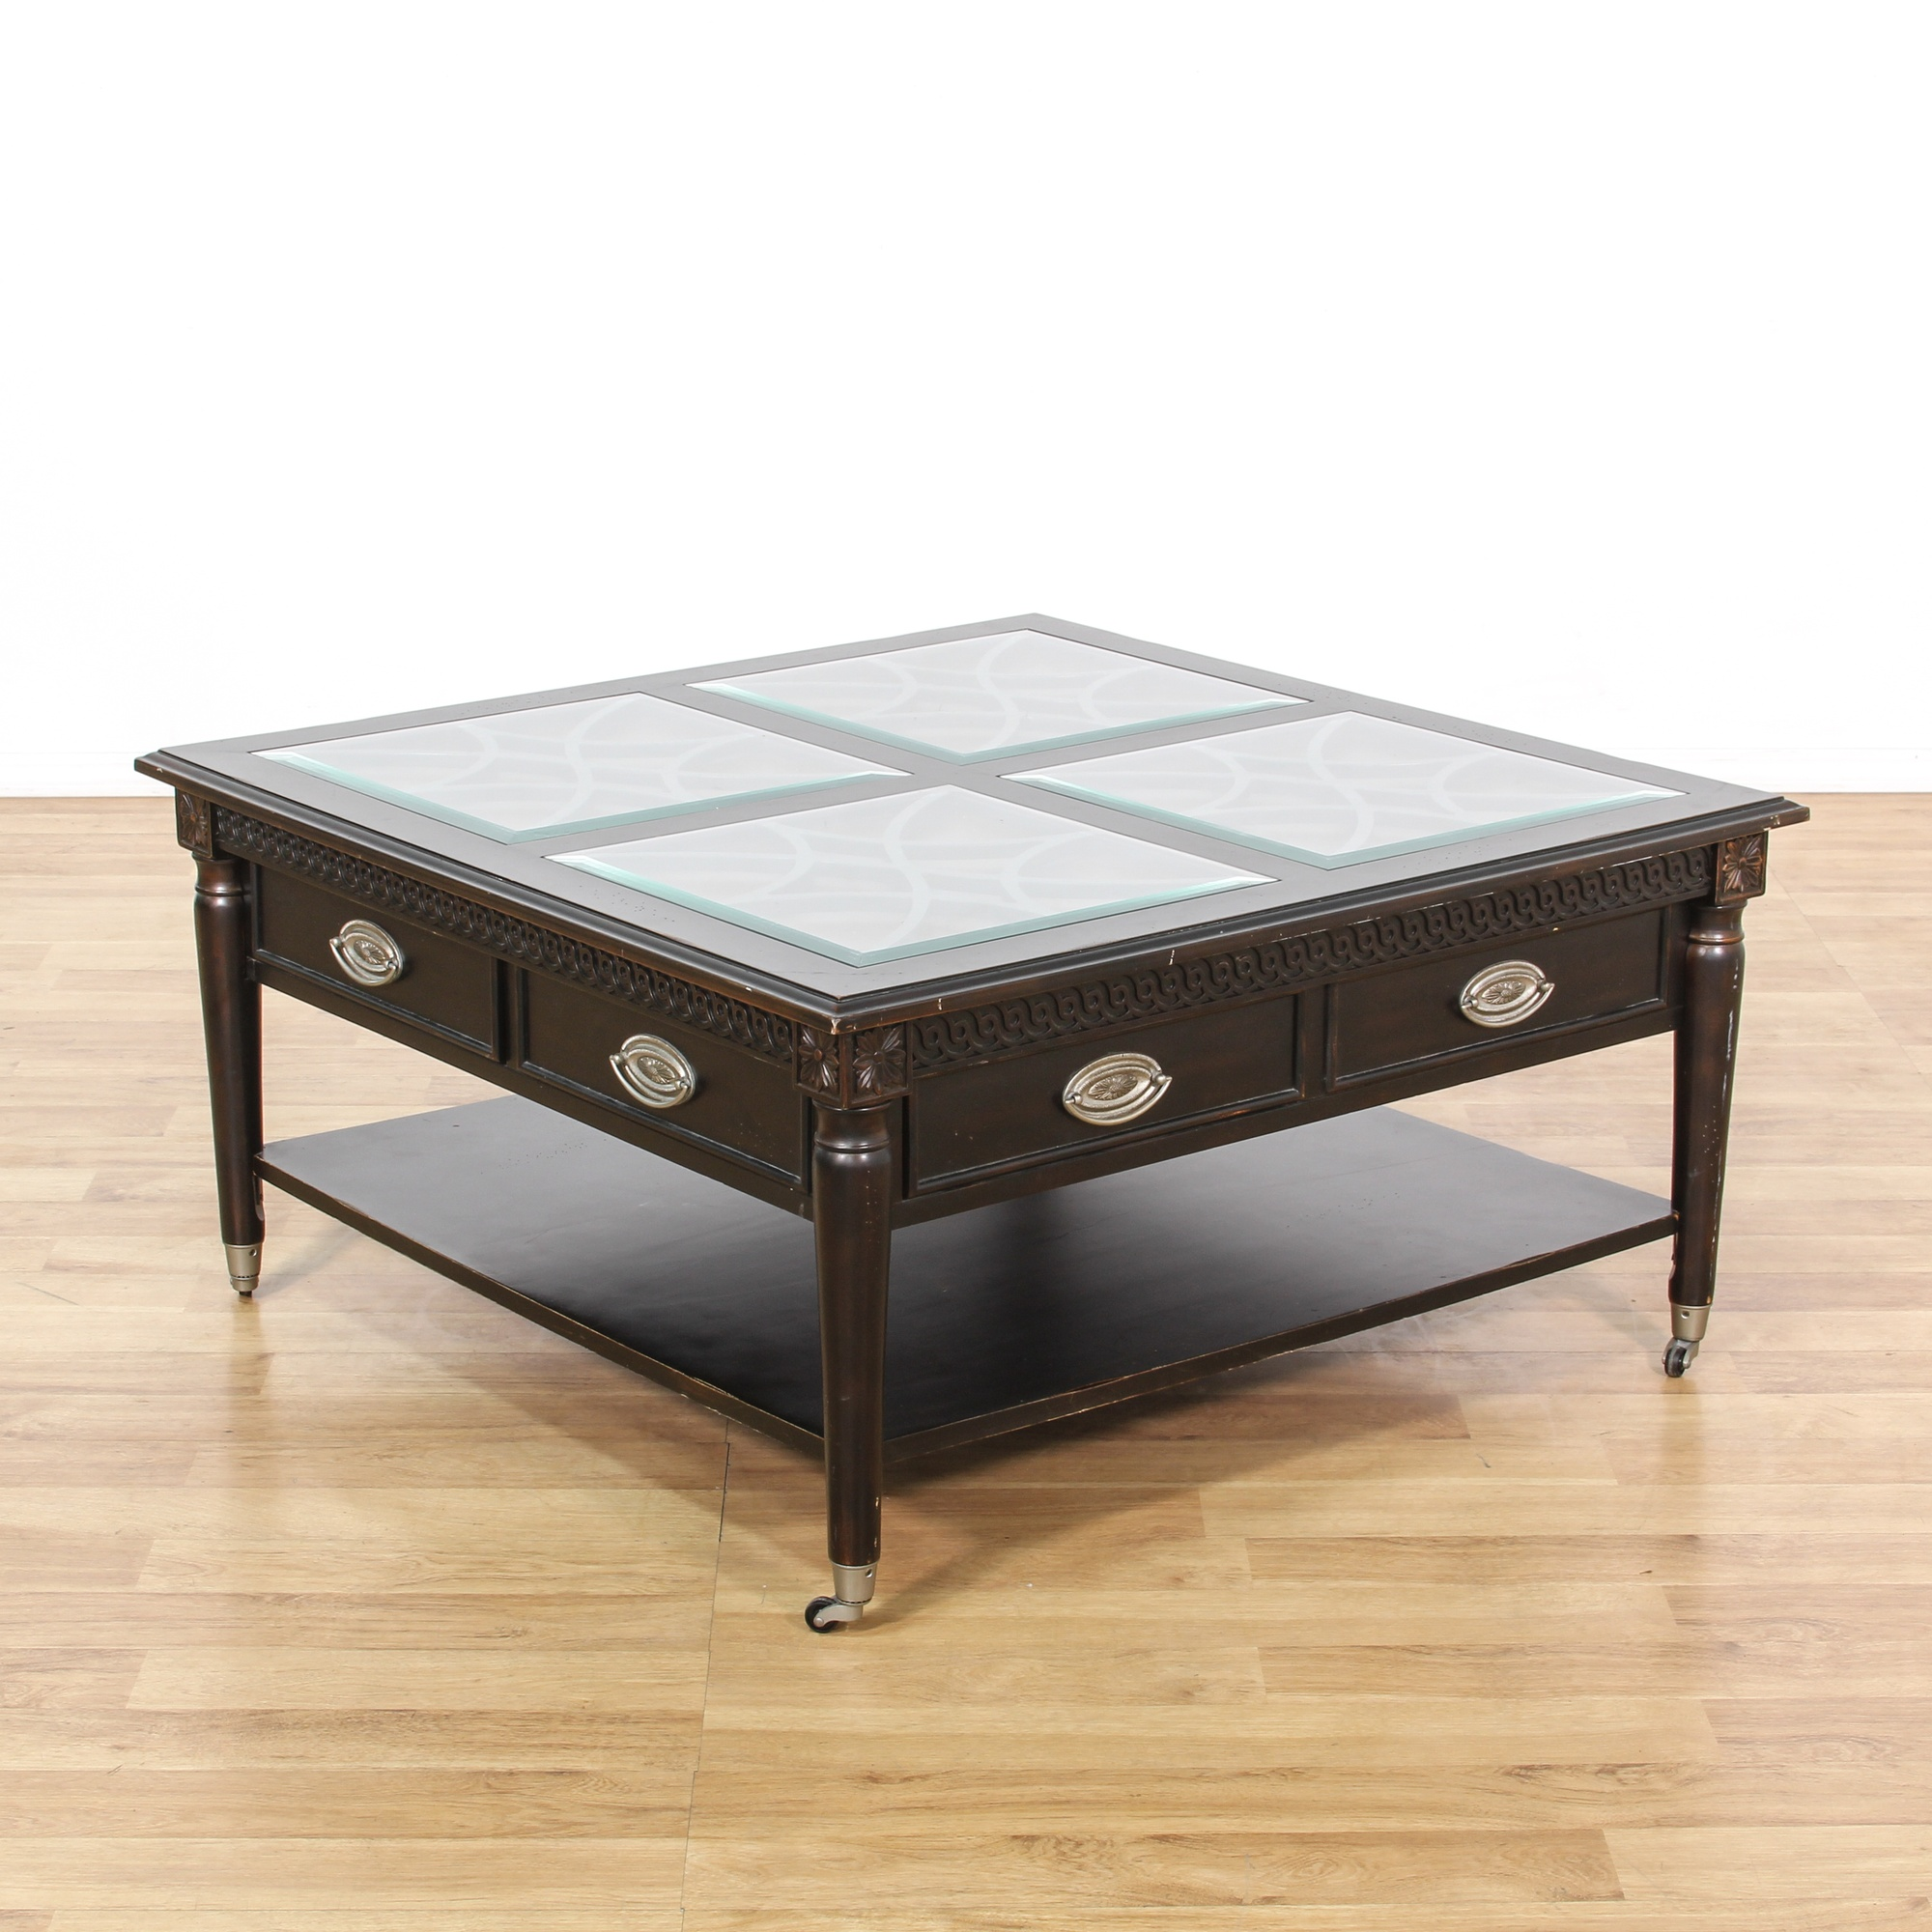 Aspen Home Coffee Table.Aspenhome Black Stained Glass Top Coffee Table Loveseat Vintage